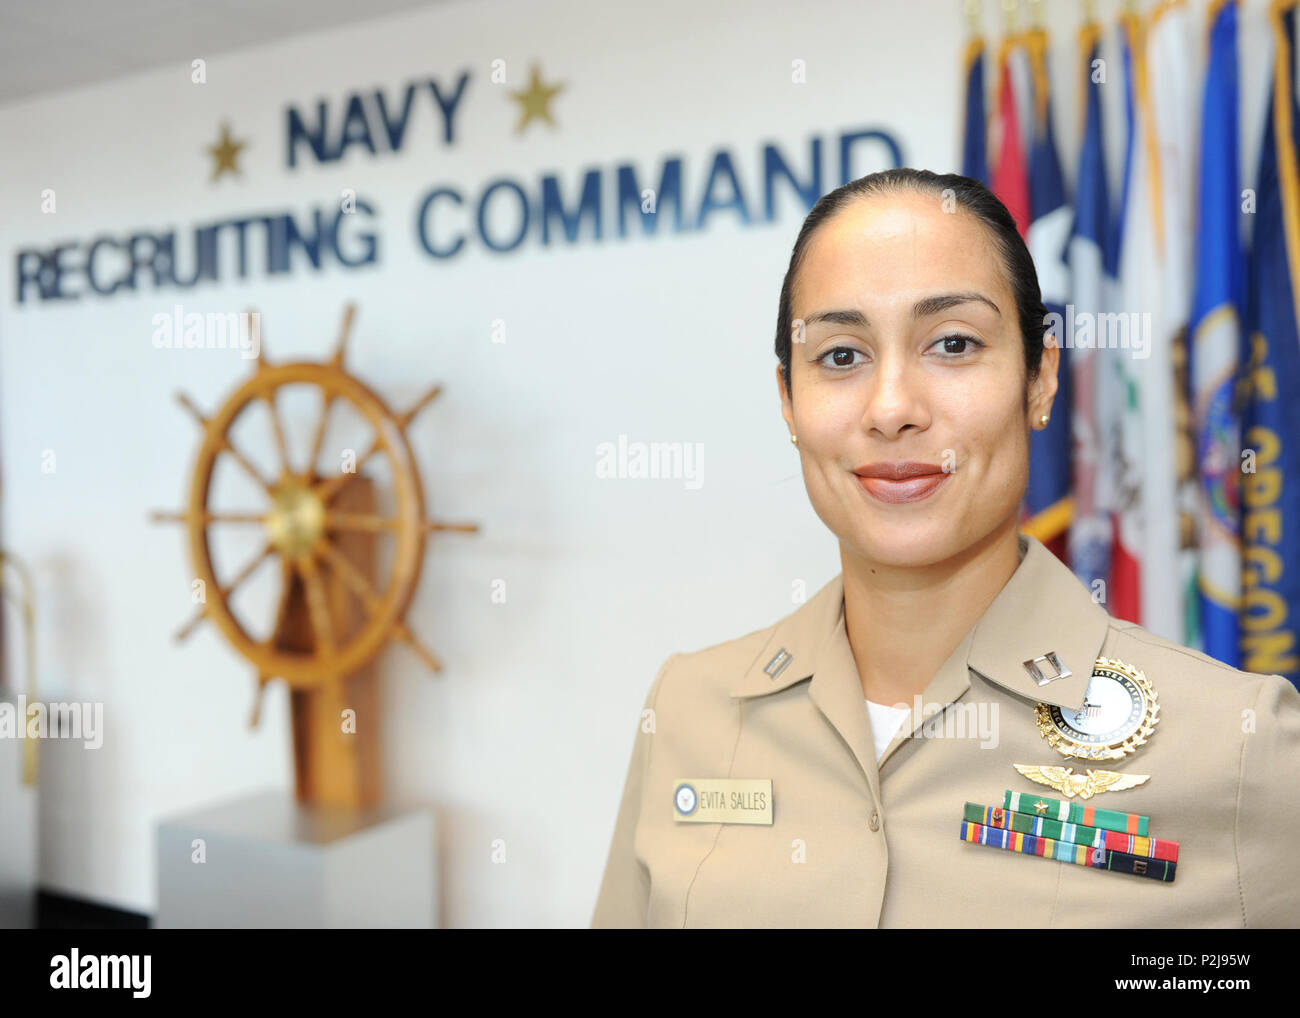 160921-N-WS952-006    MILLINGTON, Tenn. (Sept. 21, 2016) Lt. Evita Salles, director of reserve officer accessions for Navy Recruiting Command, poses for a photo on the command's quarterdeck Sept. 21. Salles was named the winner of the Salute to Active Duty Servicewomen Award by the American Legion Auxiliary at the group's national convention in Cincinnati, Aug. 30. (U.S. Navy photo by Mass Communication Specialist 2nd Class Brandon Martin/Released) - Stock Image